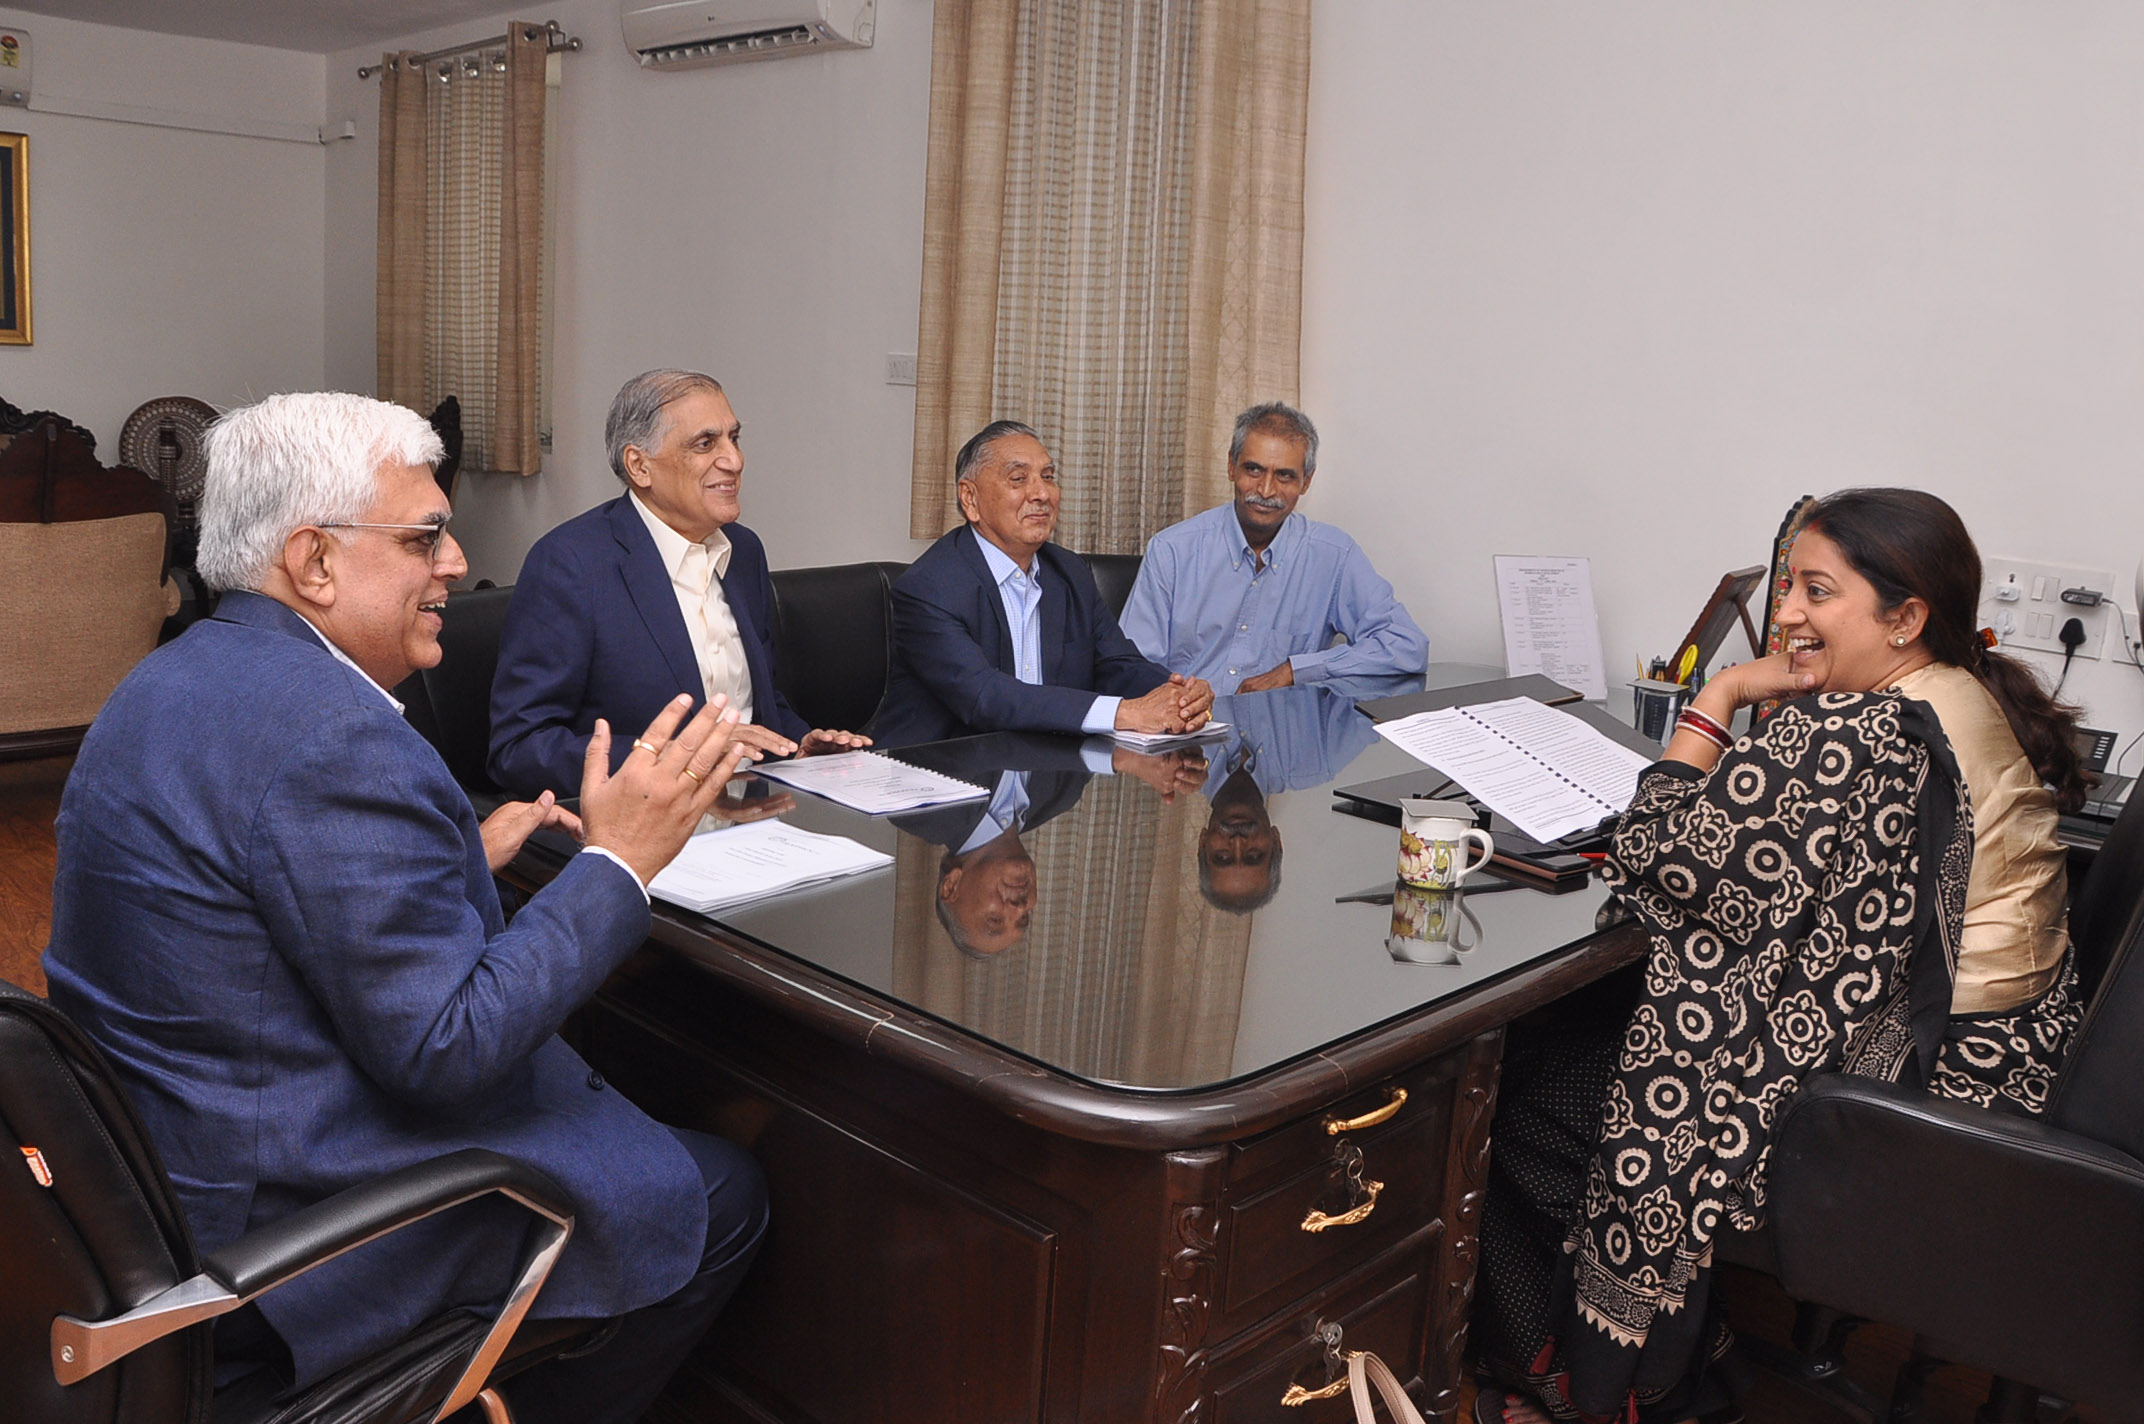 Hon'ble Minister of Textiles, Smt. Smriti Zubin Irani being apprised about the current situation of Cotton Textile industry by TEXPROCIL Delegates in a meeting at her office in New Delhi on June 7, 2019.